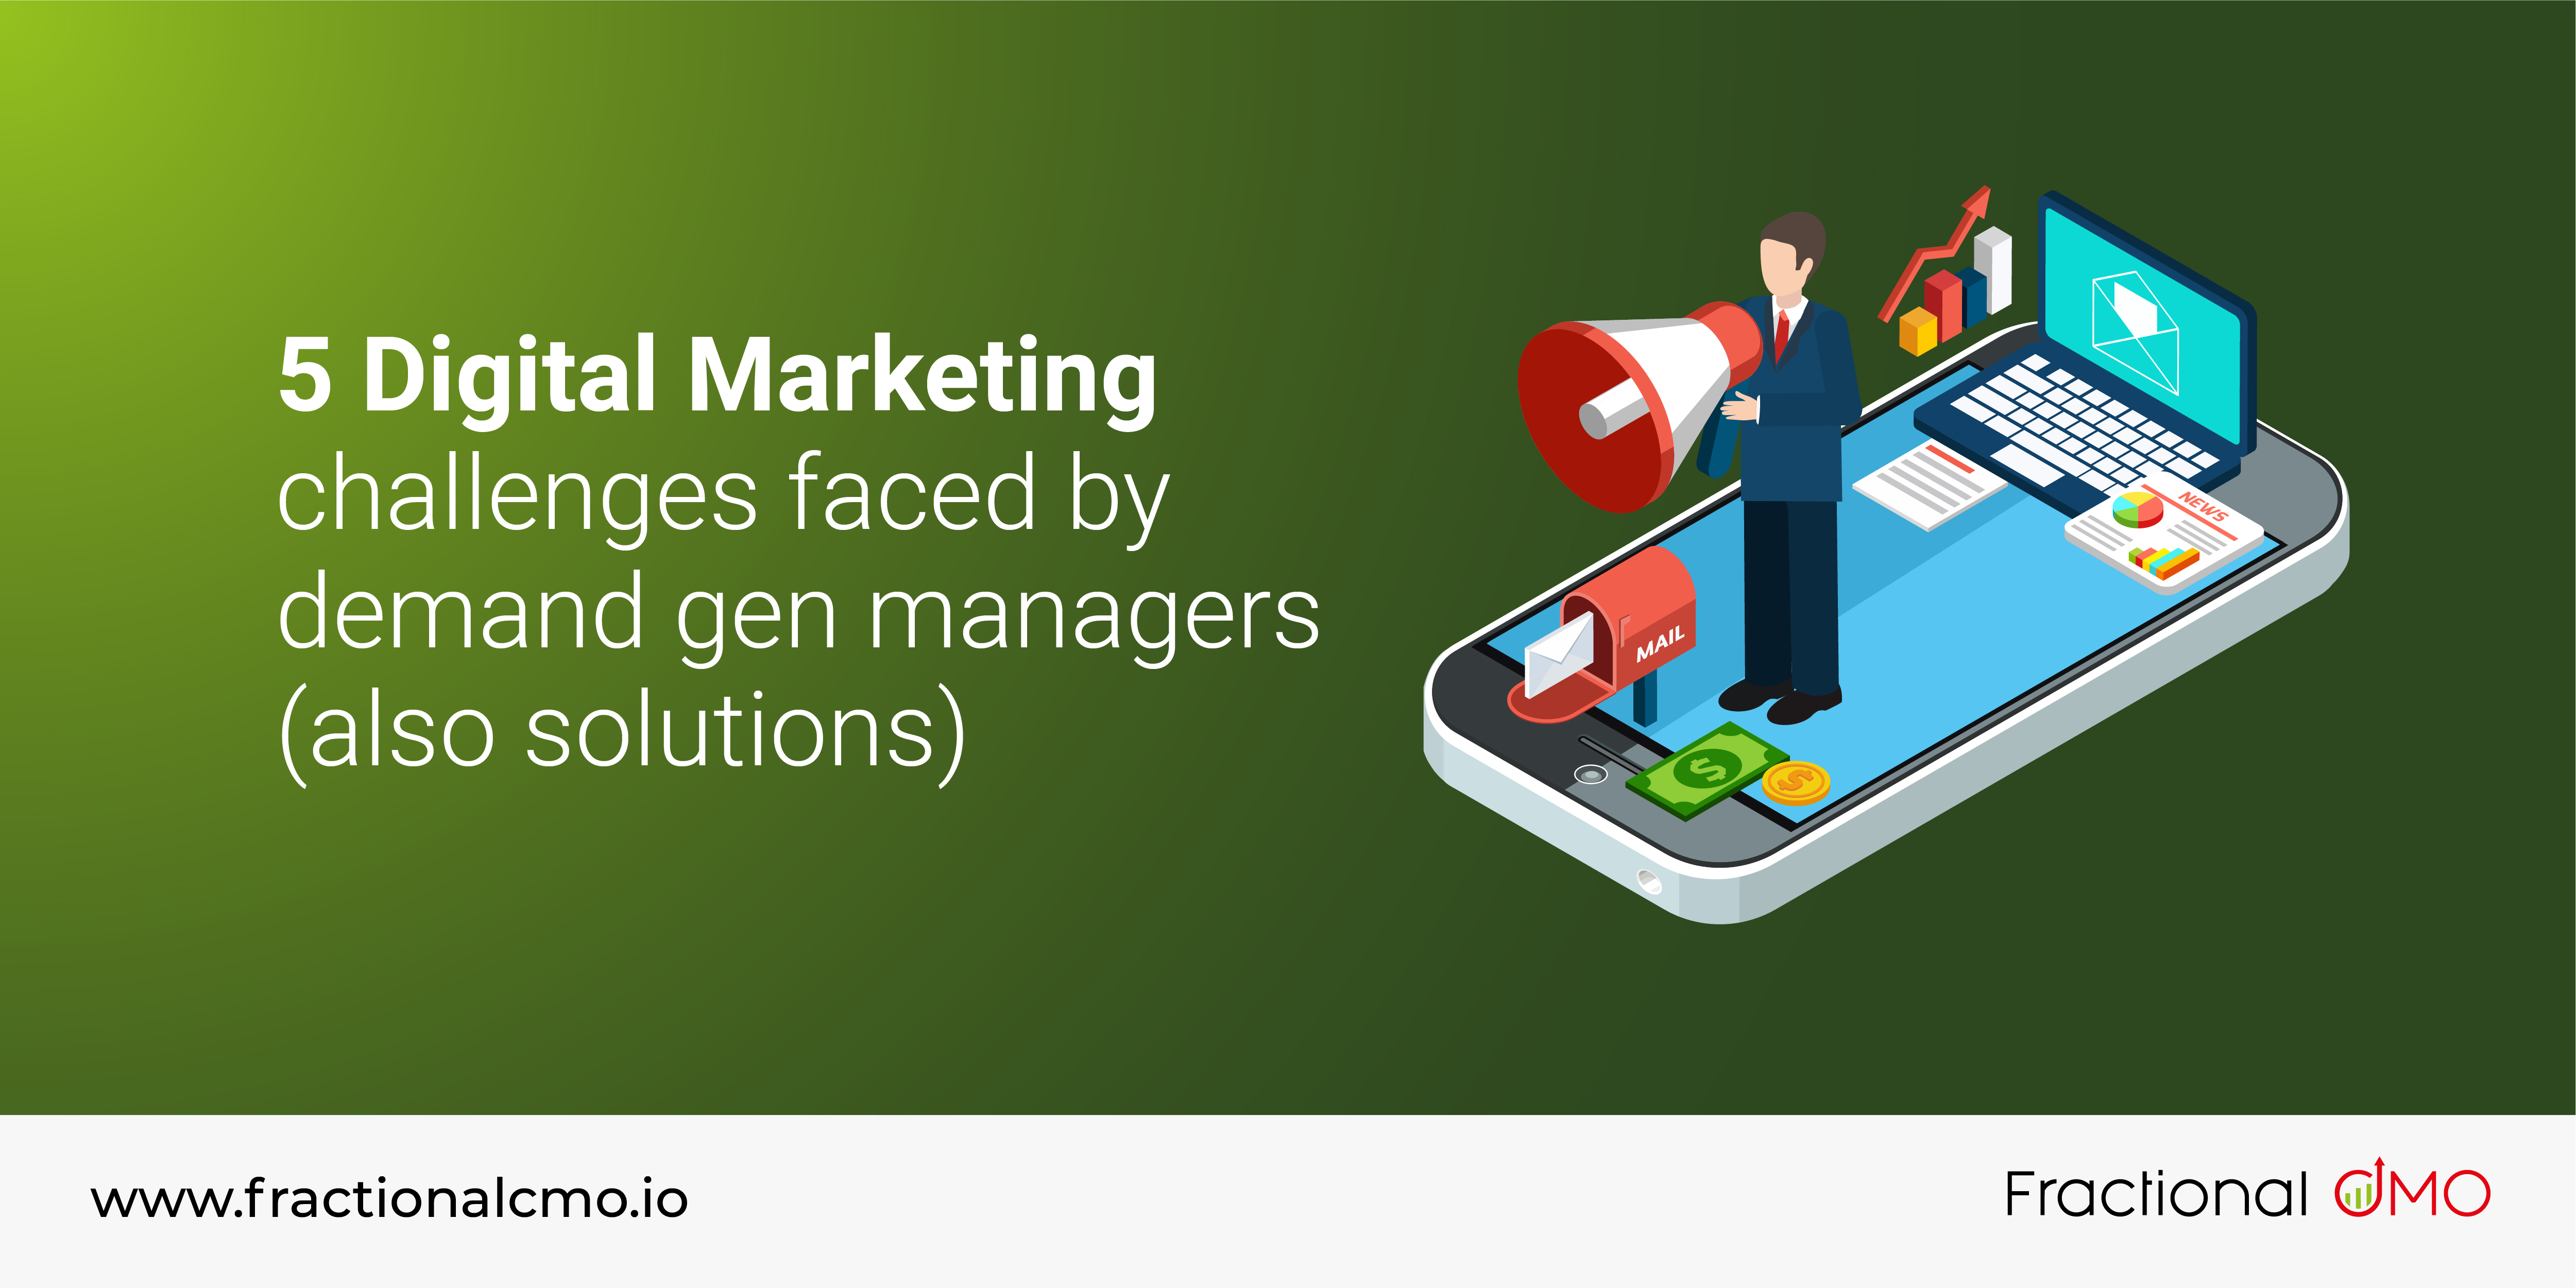 5 digital marketing challenges faced by demand gen managers (also solutions)